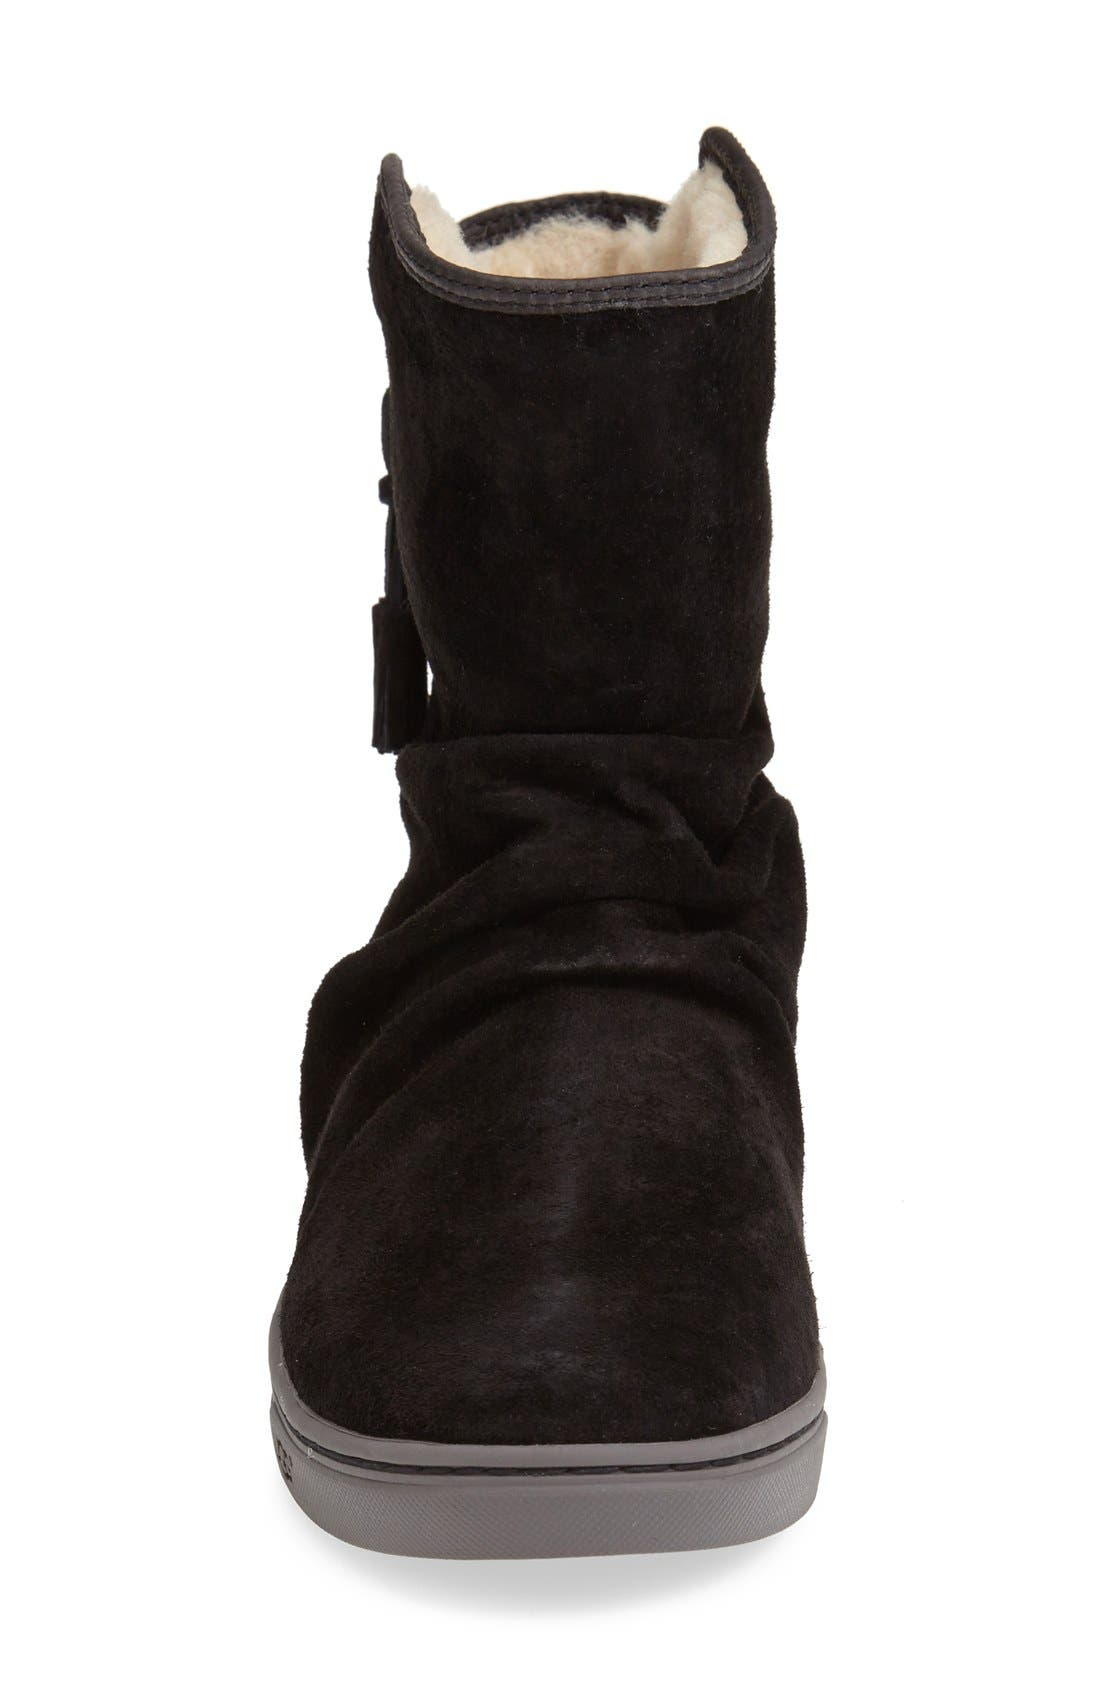 Australia 'Becky' Water Resistant Suede Boot,                             Alternate thumbnail 4, color,                             001